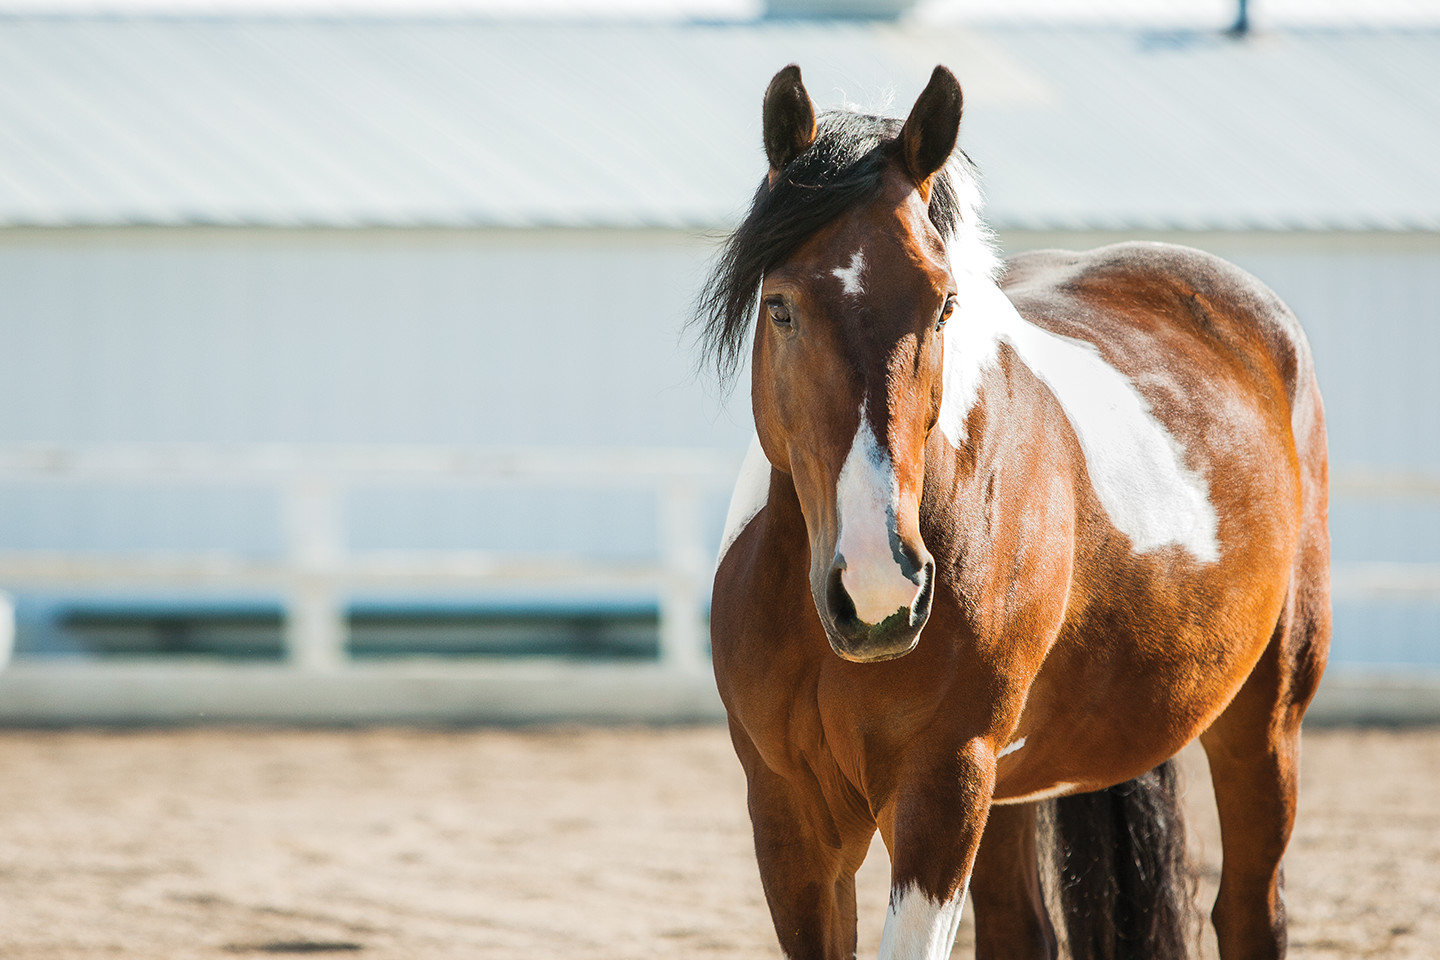 Equine Facilitated Therapy for Addiction Treatment